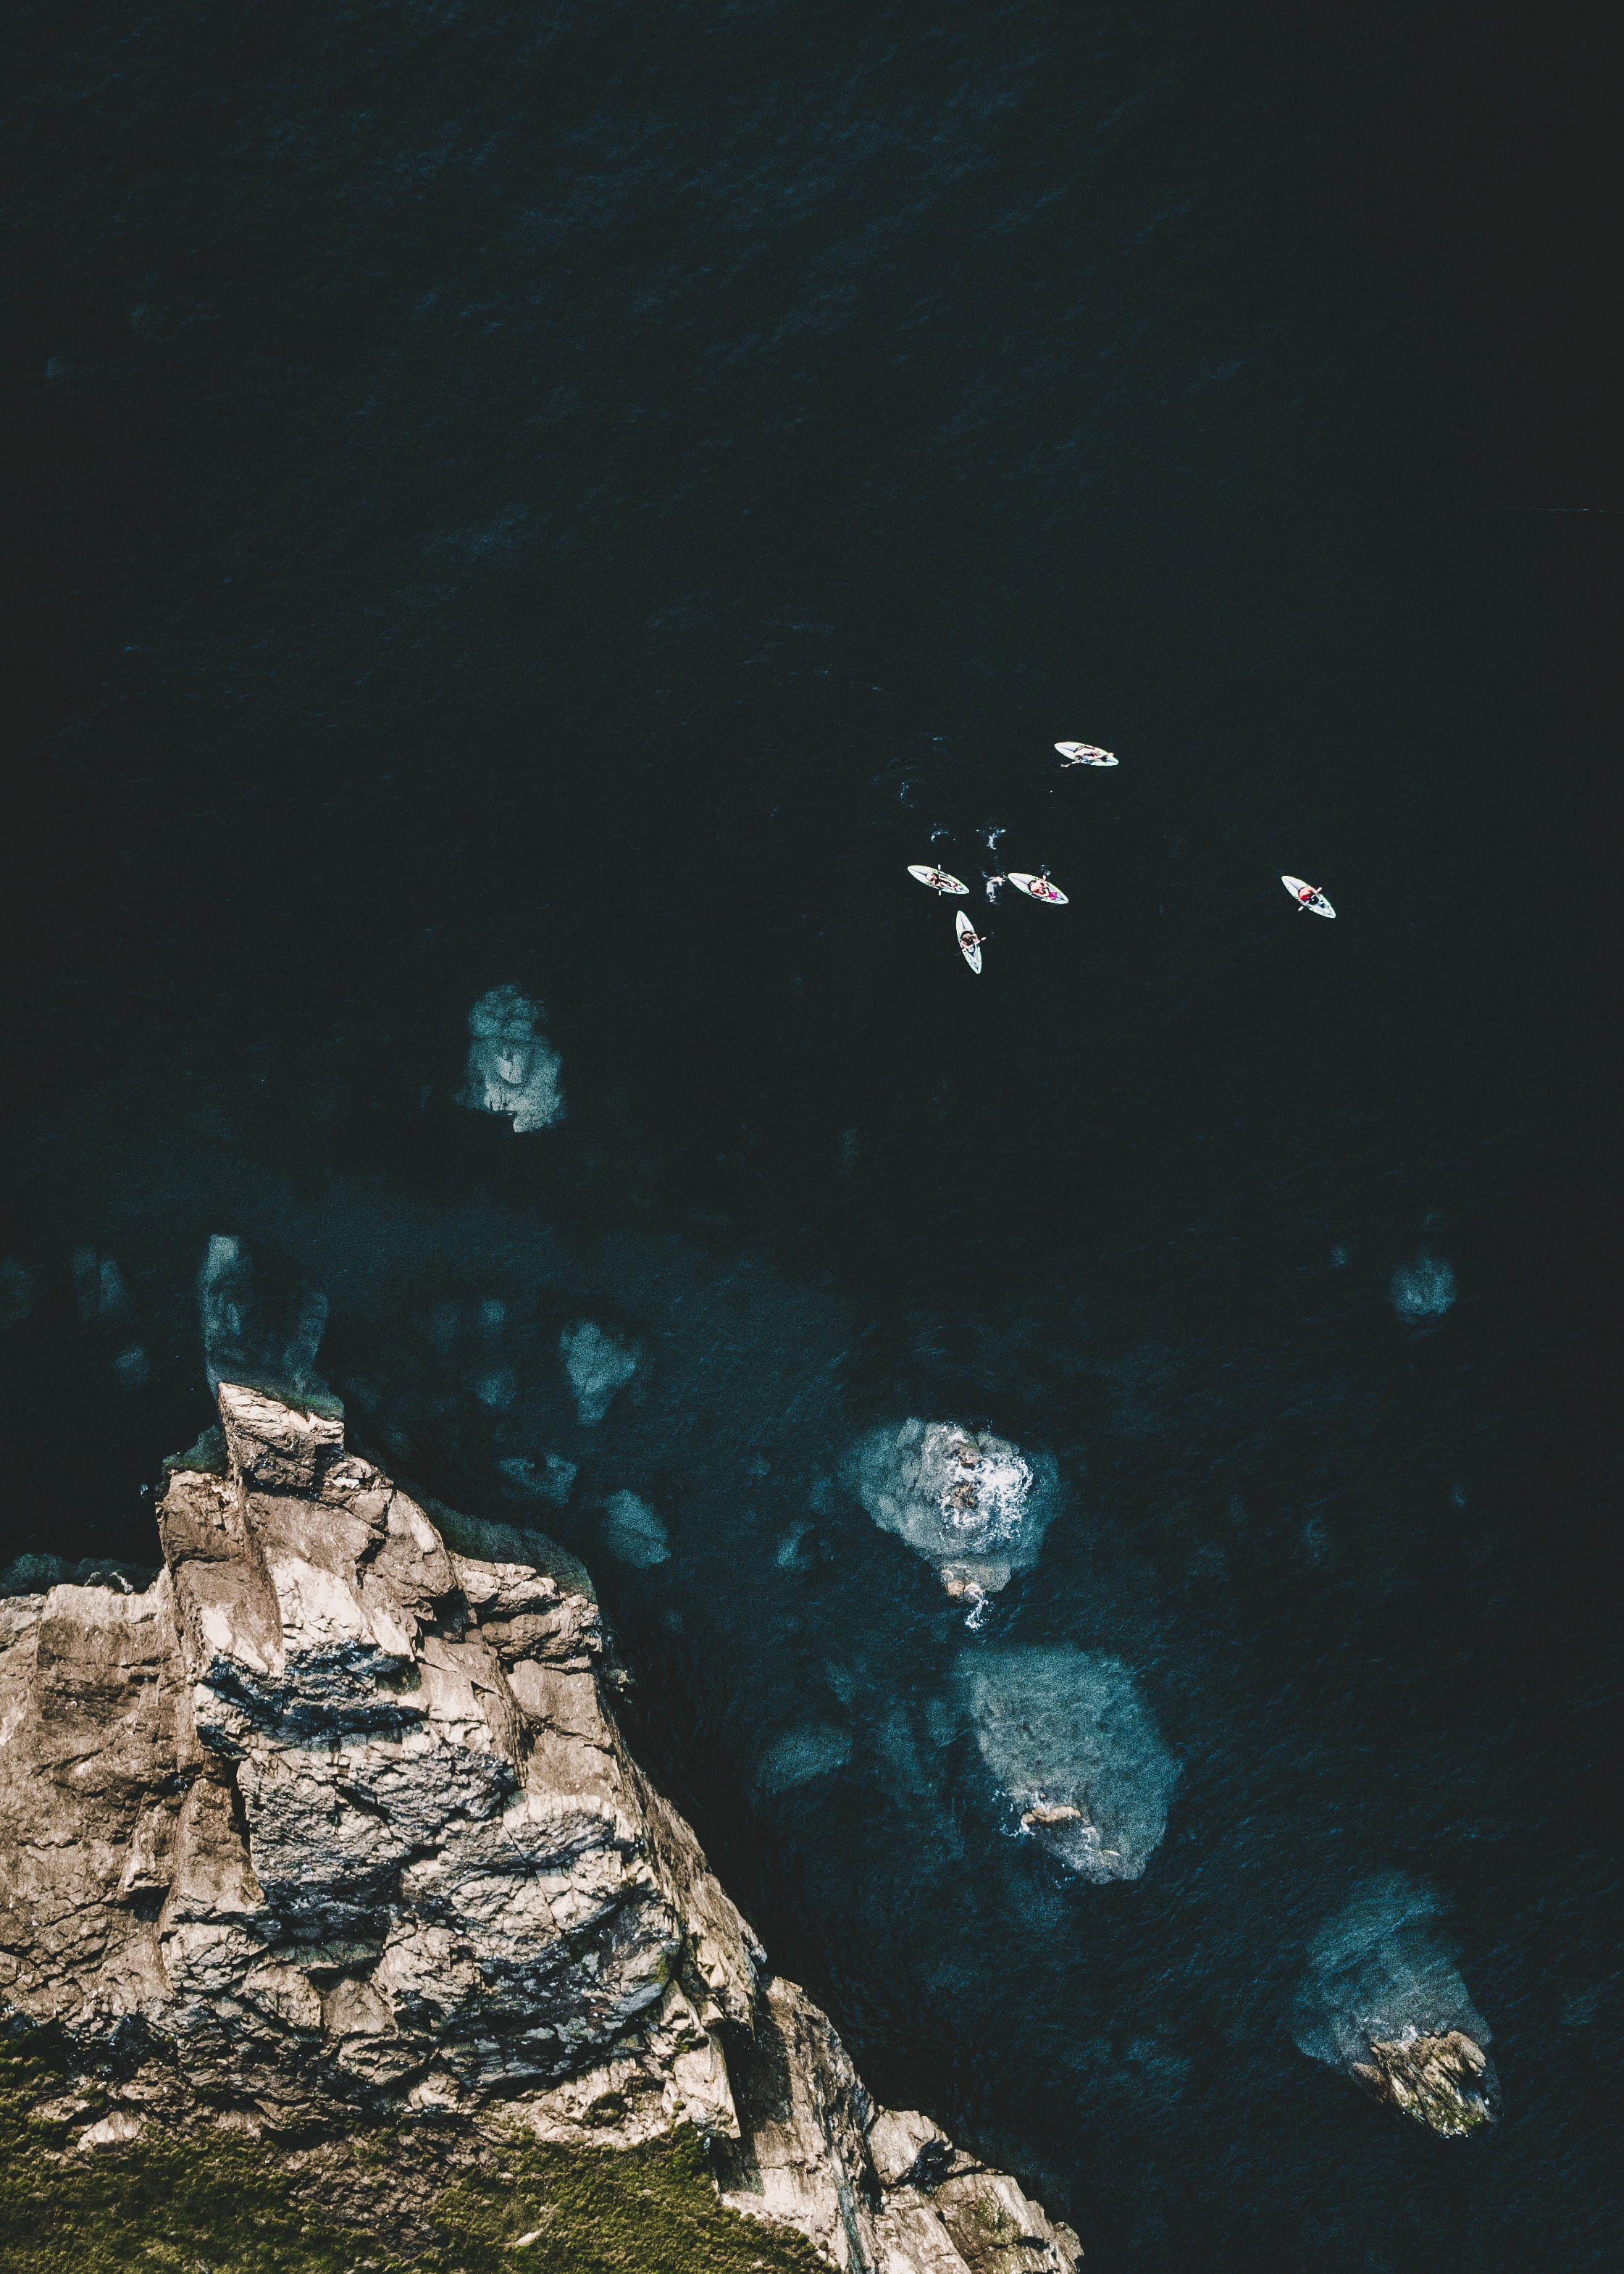 aerial photo of kayaks on water near brown cliff